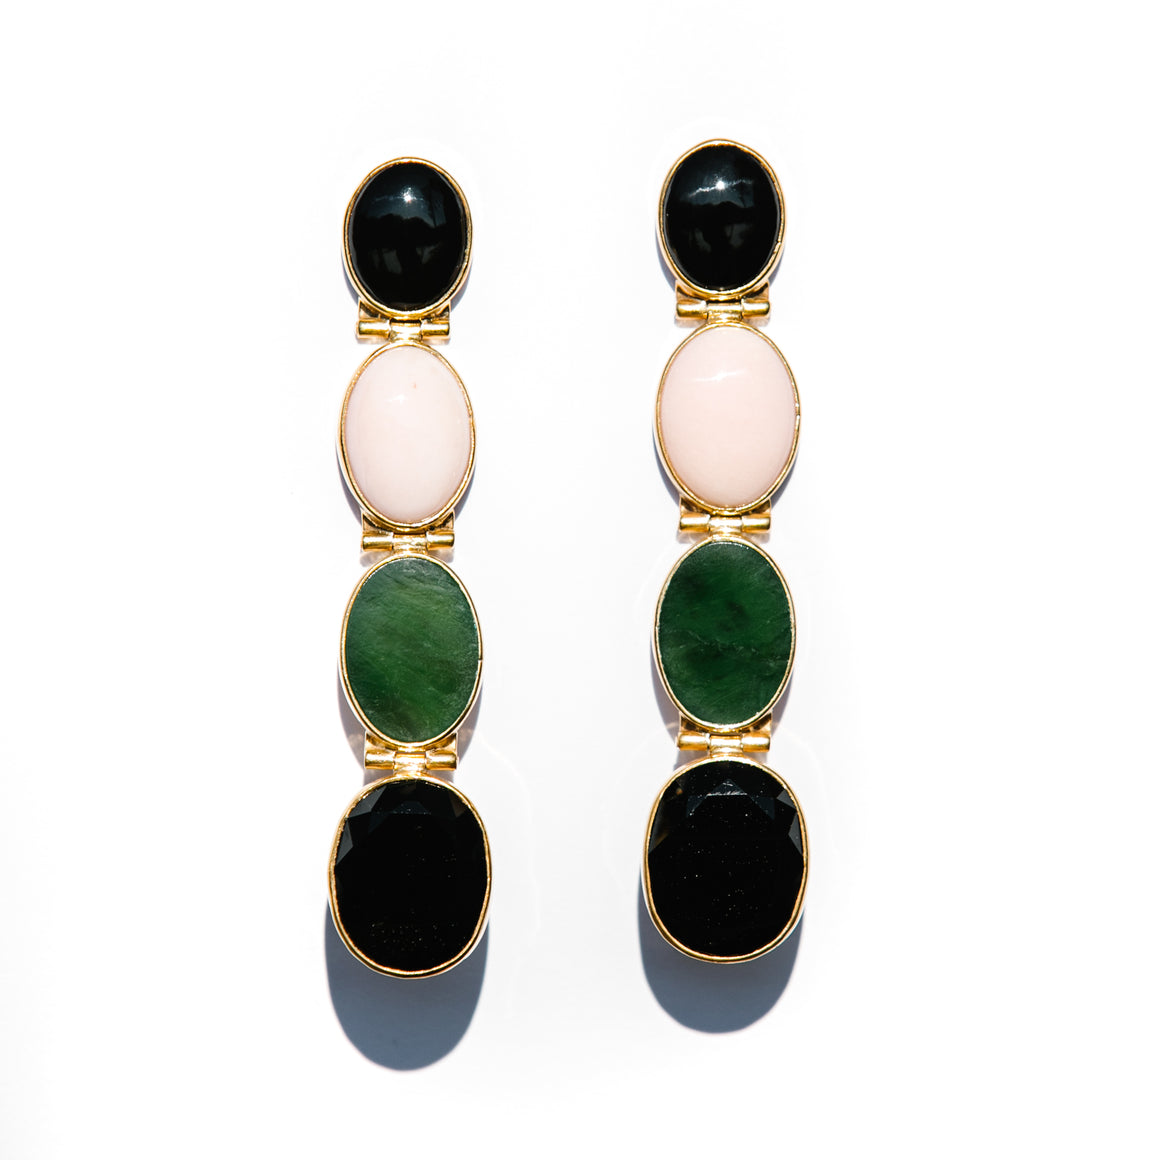 SHELL, JADE AND BLACK ONYX OVAL DROP EARRINGS